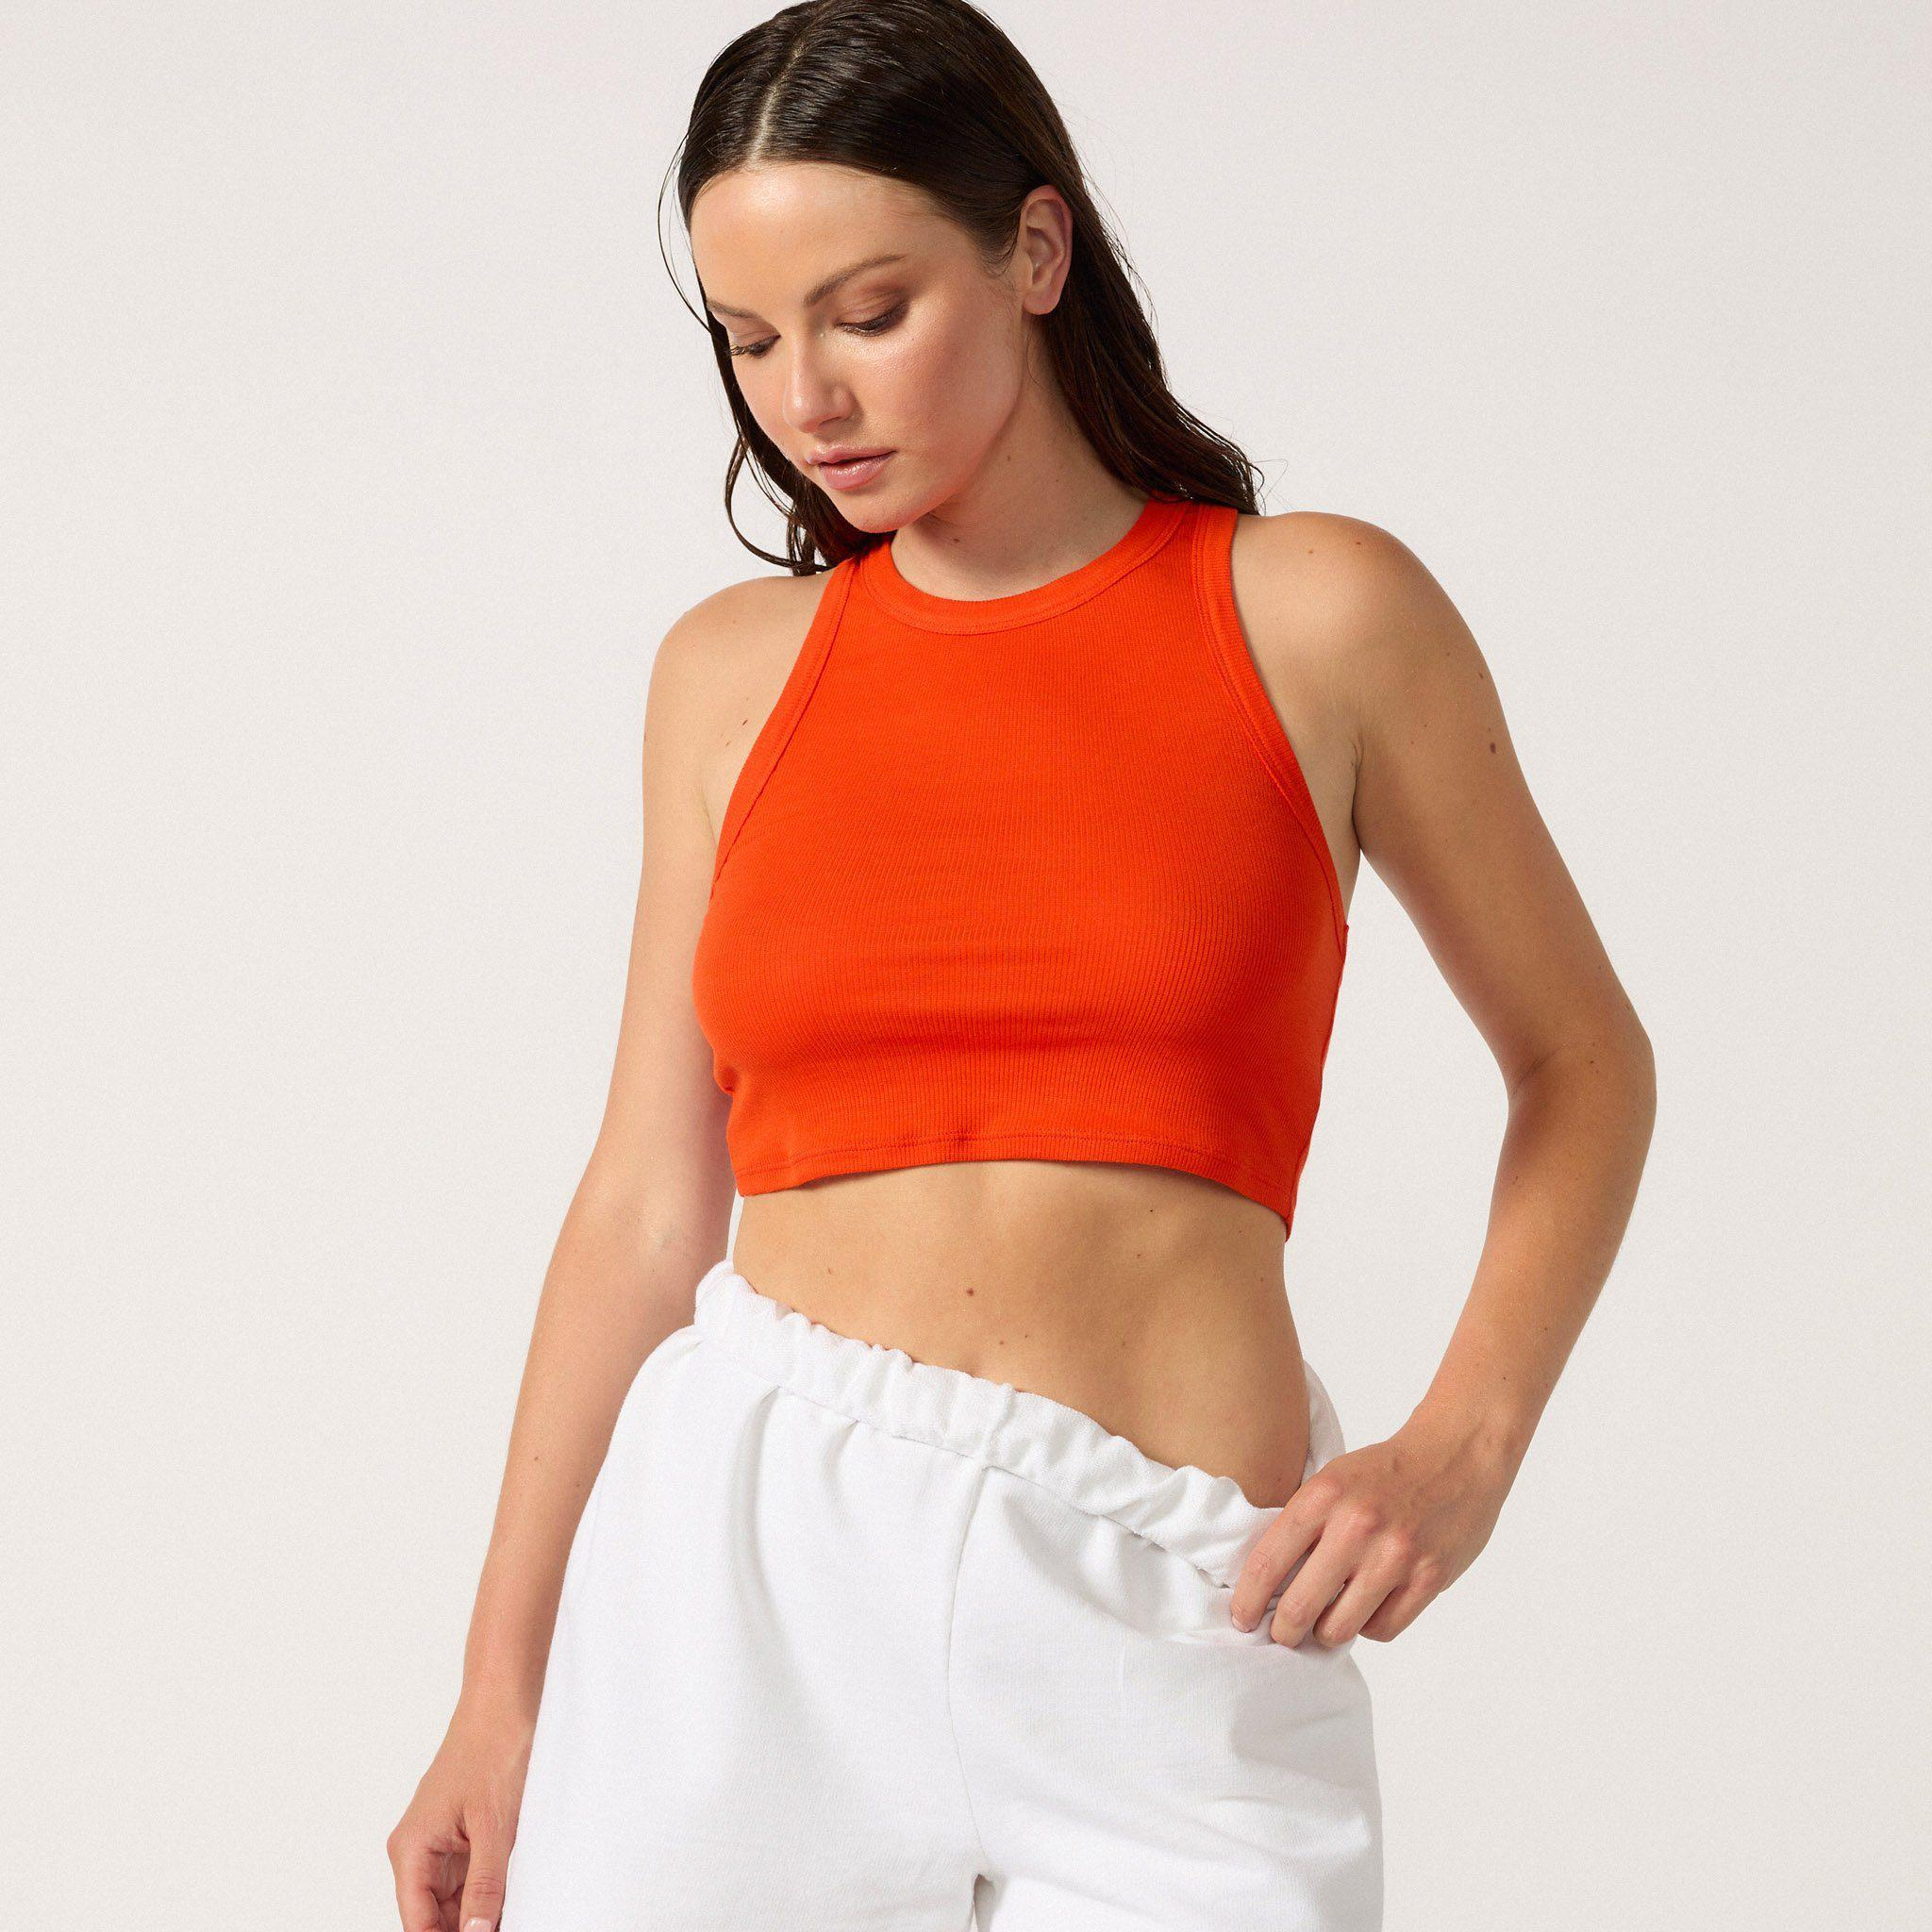 The Live-in Cropped Rib Tank